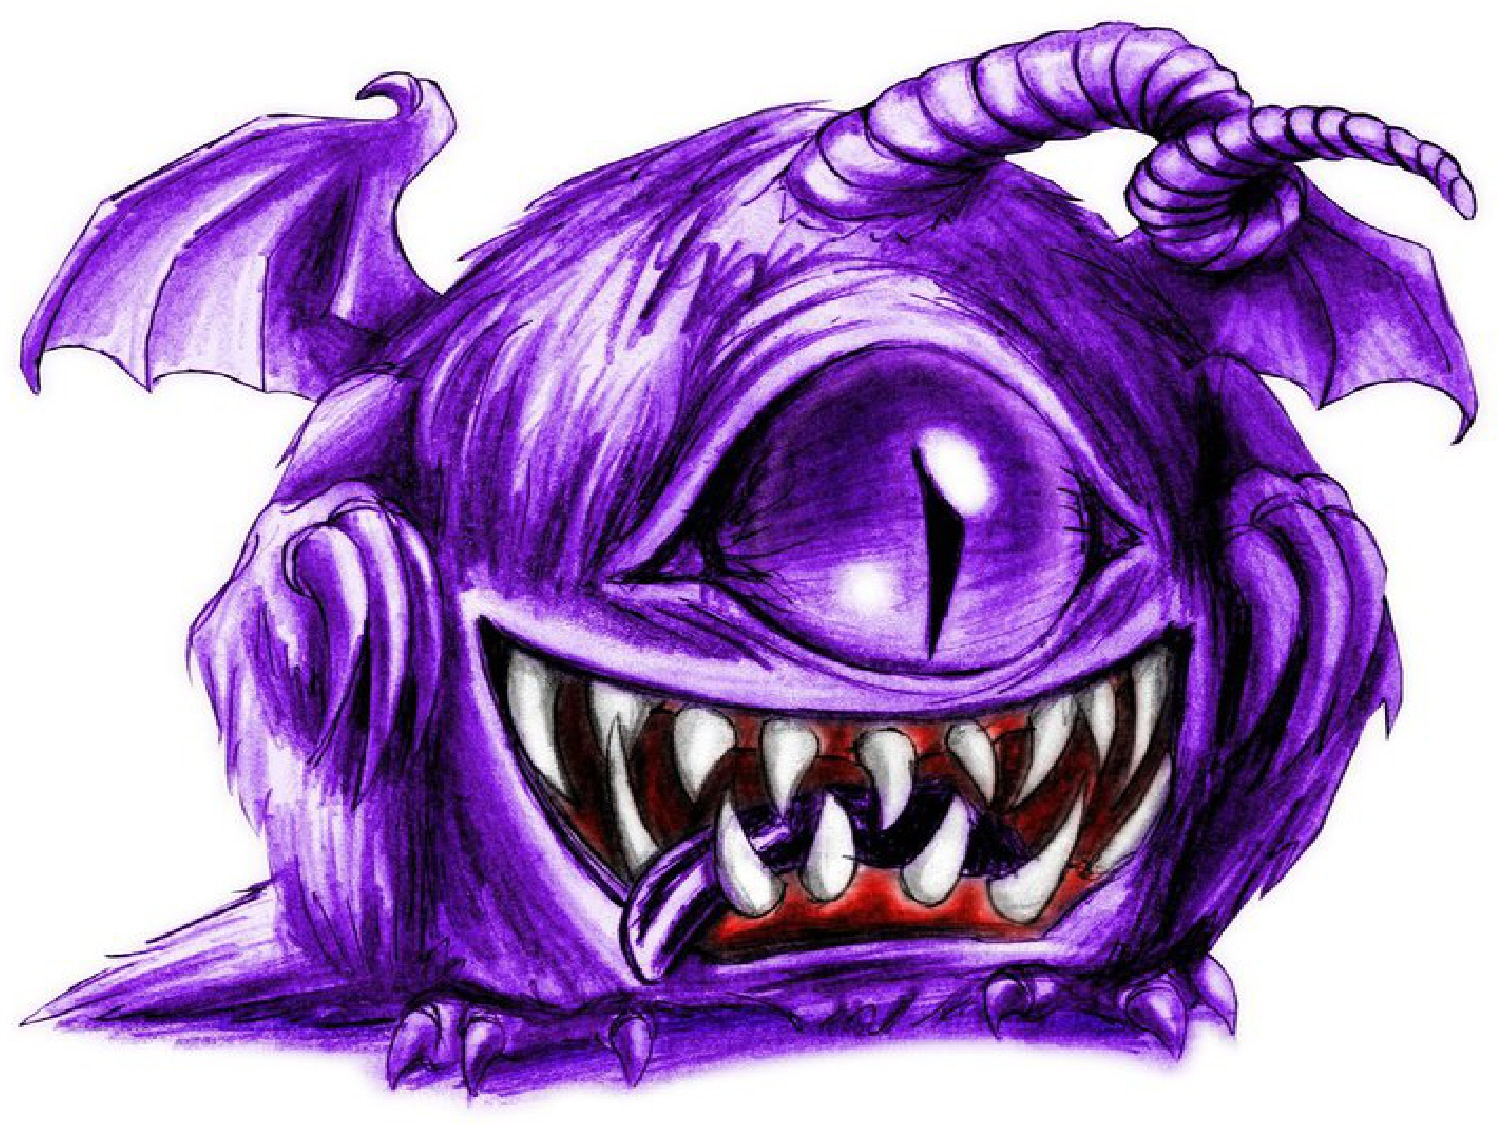 purple-people-eater-1a.jpg